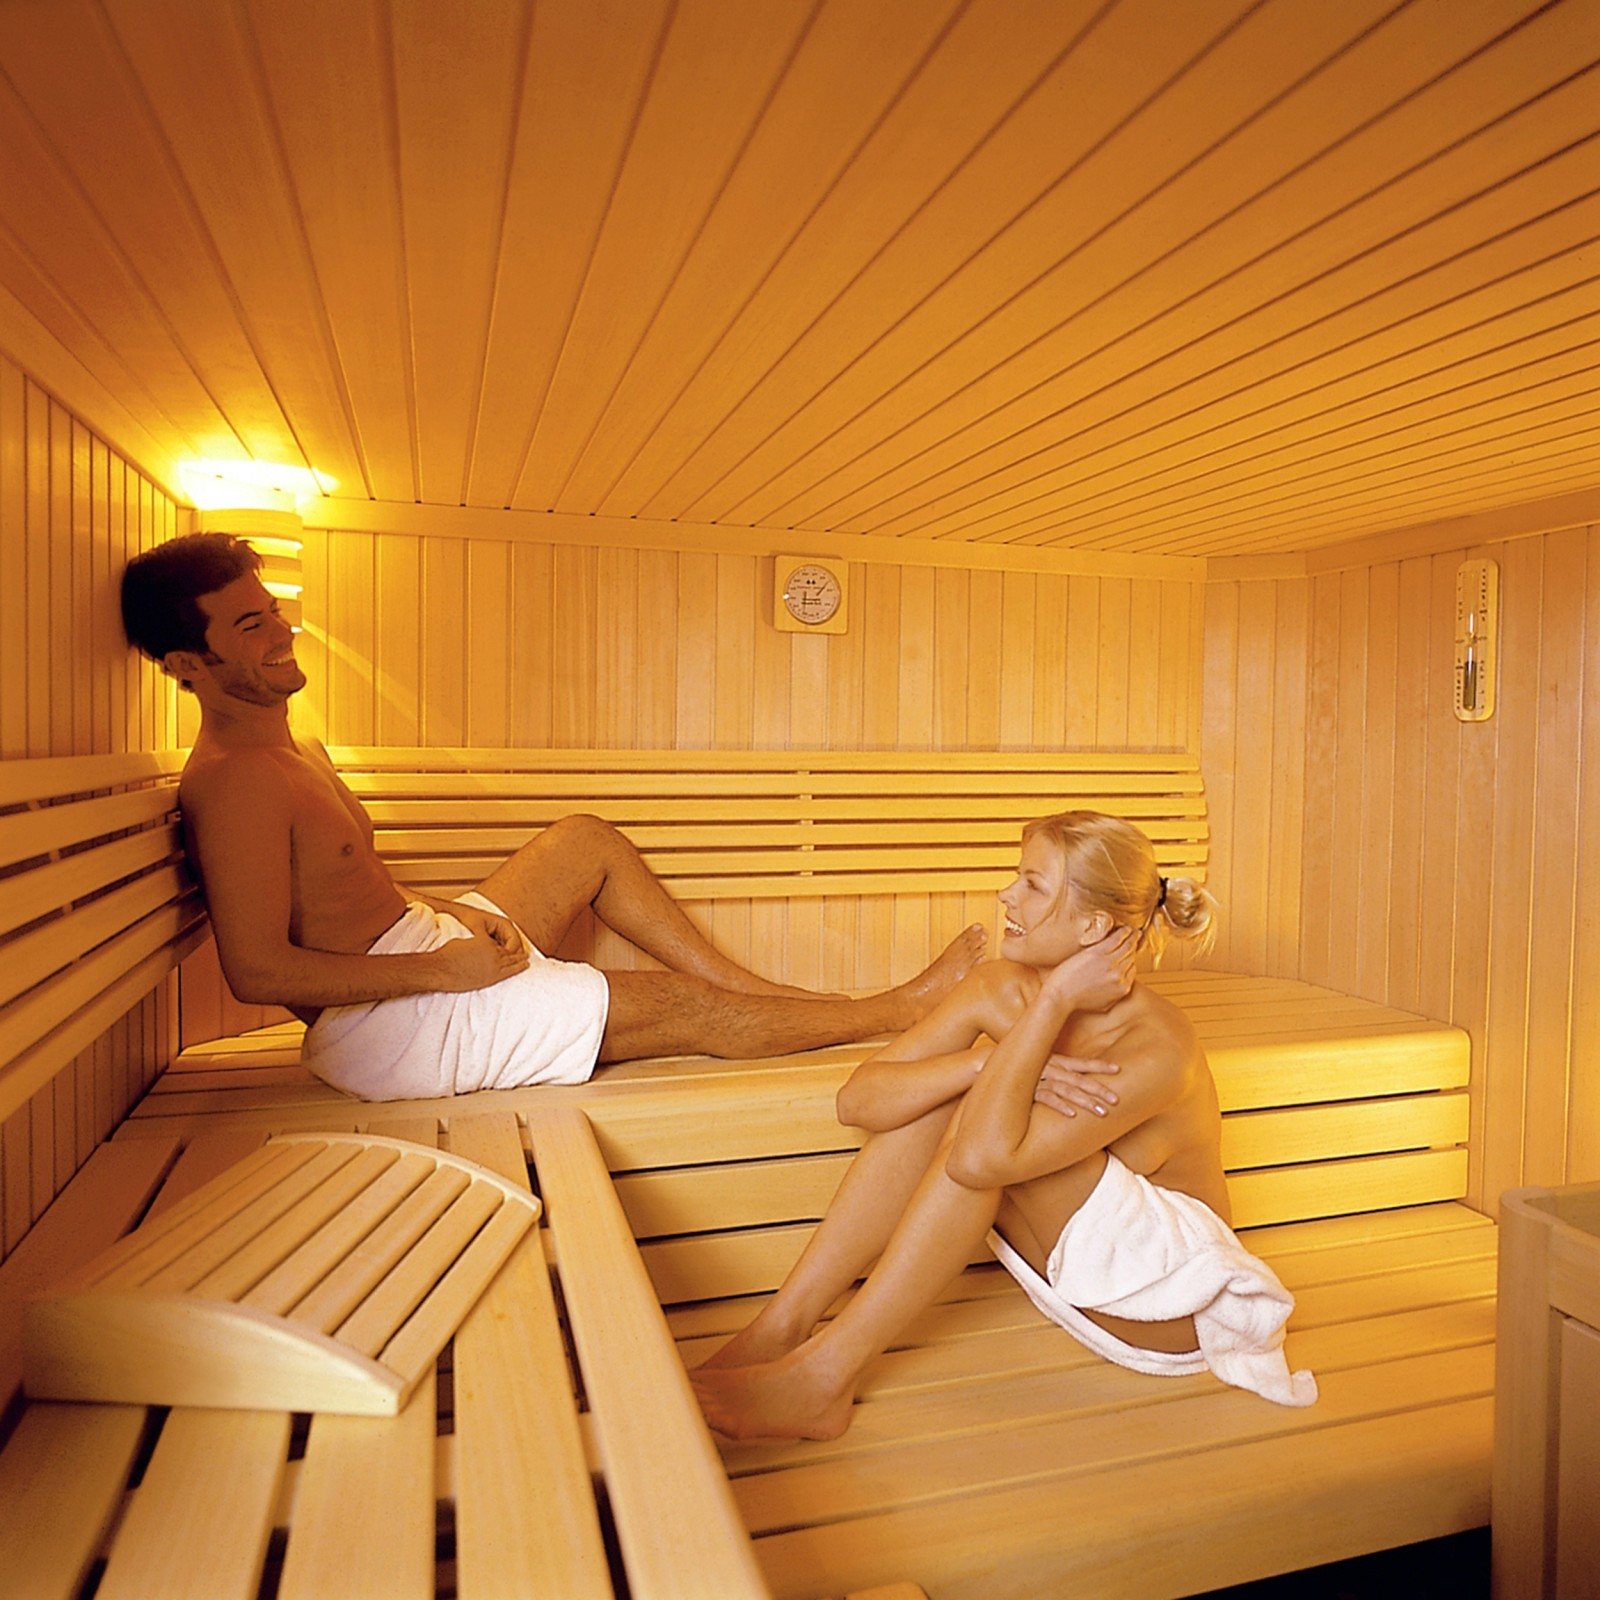 wellness sauna 01 pension mozart bild nr 22 album pension mozart fotos bildergalerie. Black Bedroom Furniture Sets. Home Design Ideas